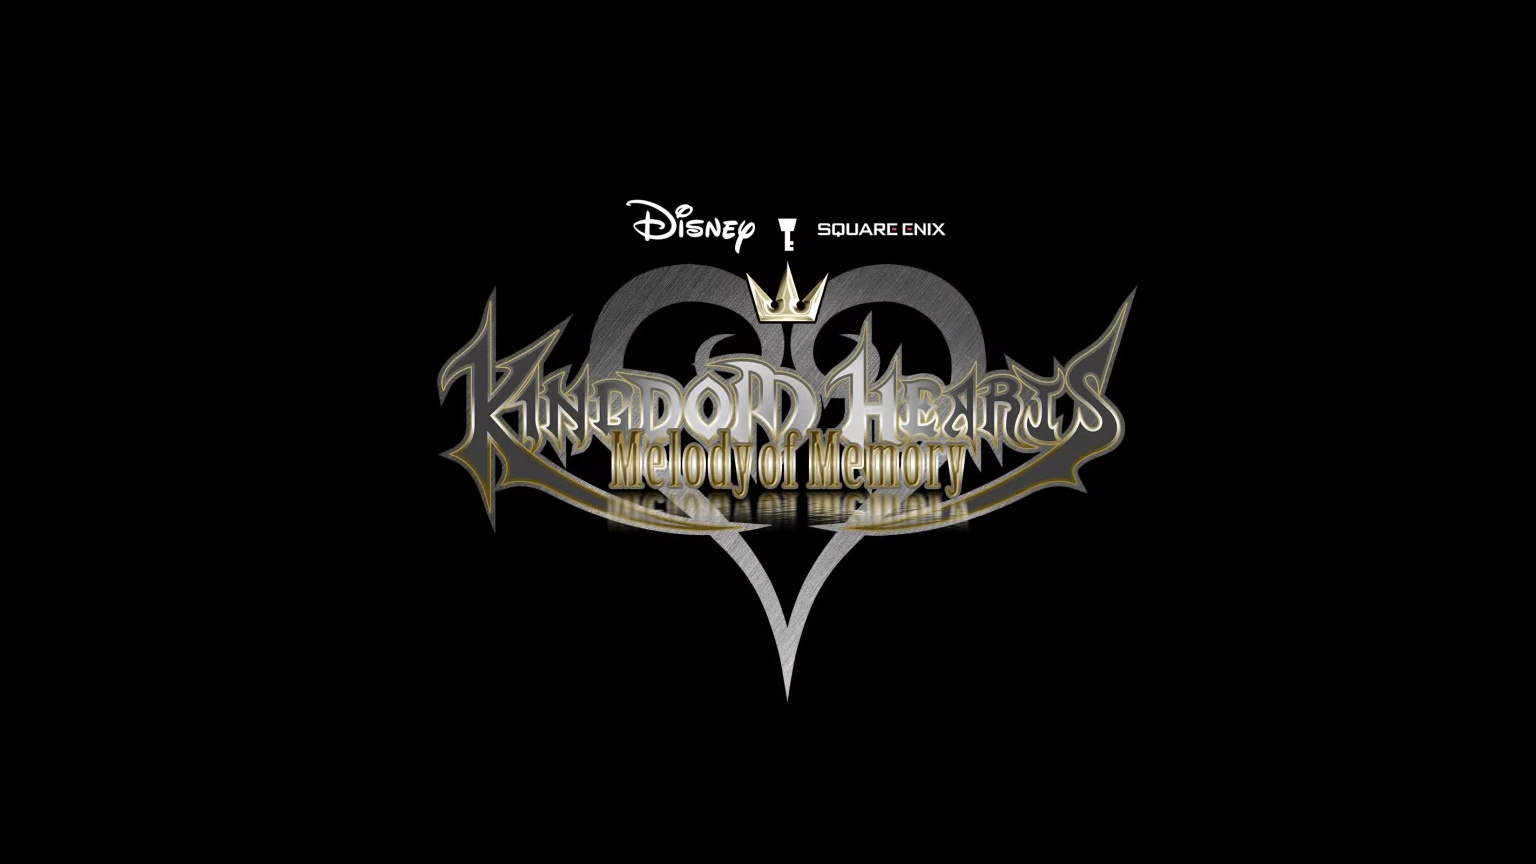 Kingdom Hearts: Melody of Memory English announcement, trailer